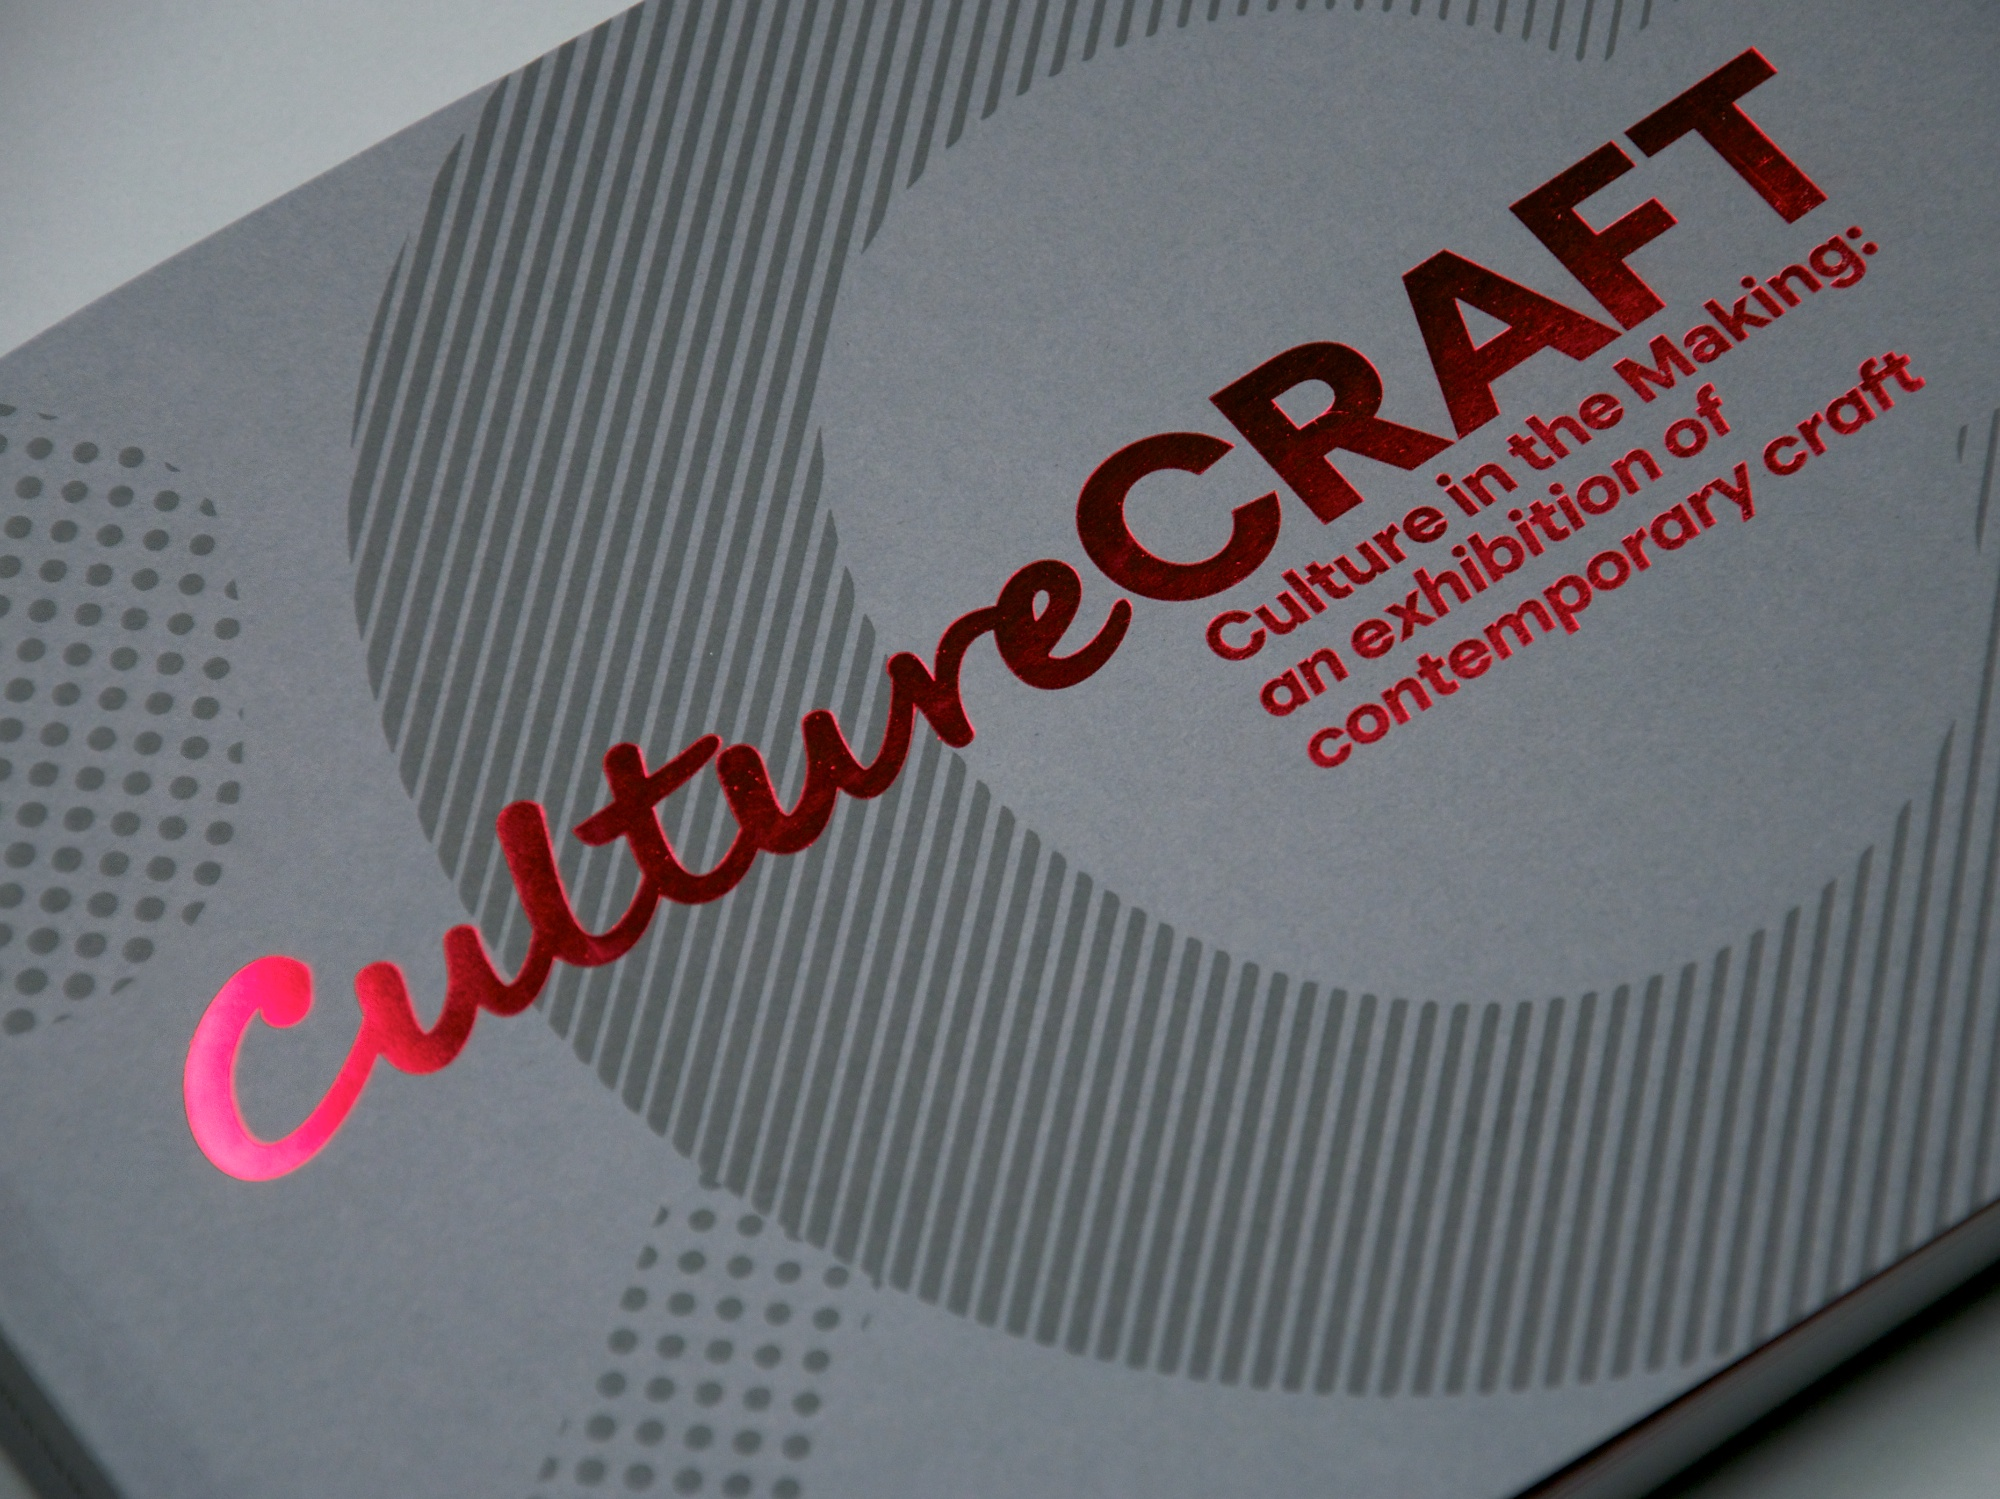 Cover image: CultureCraft catalogue